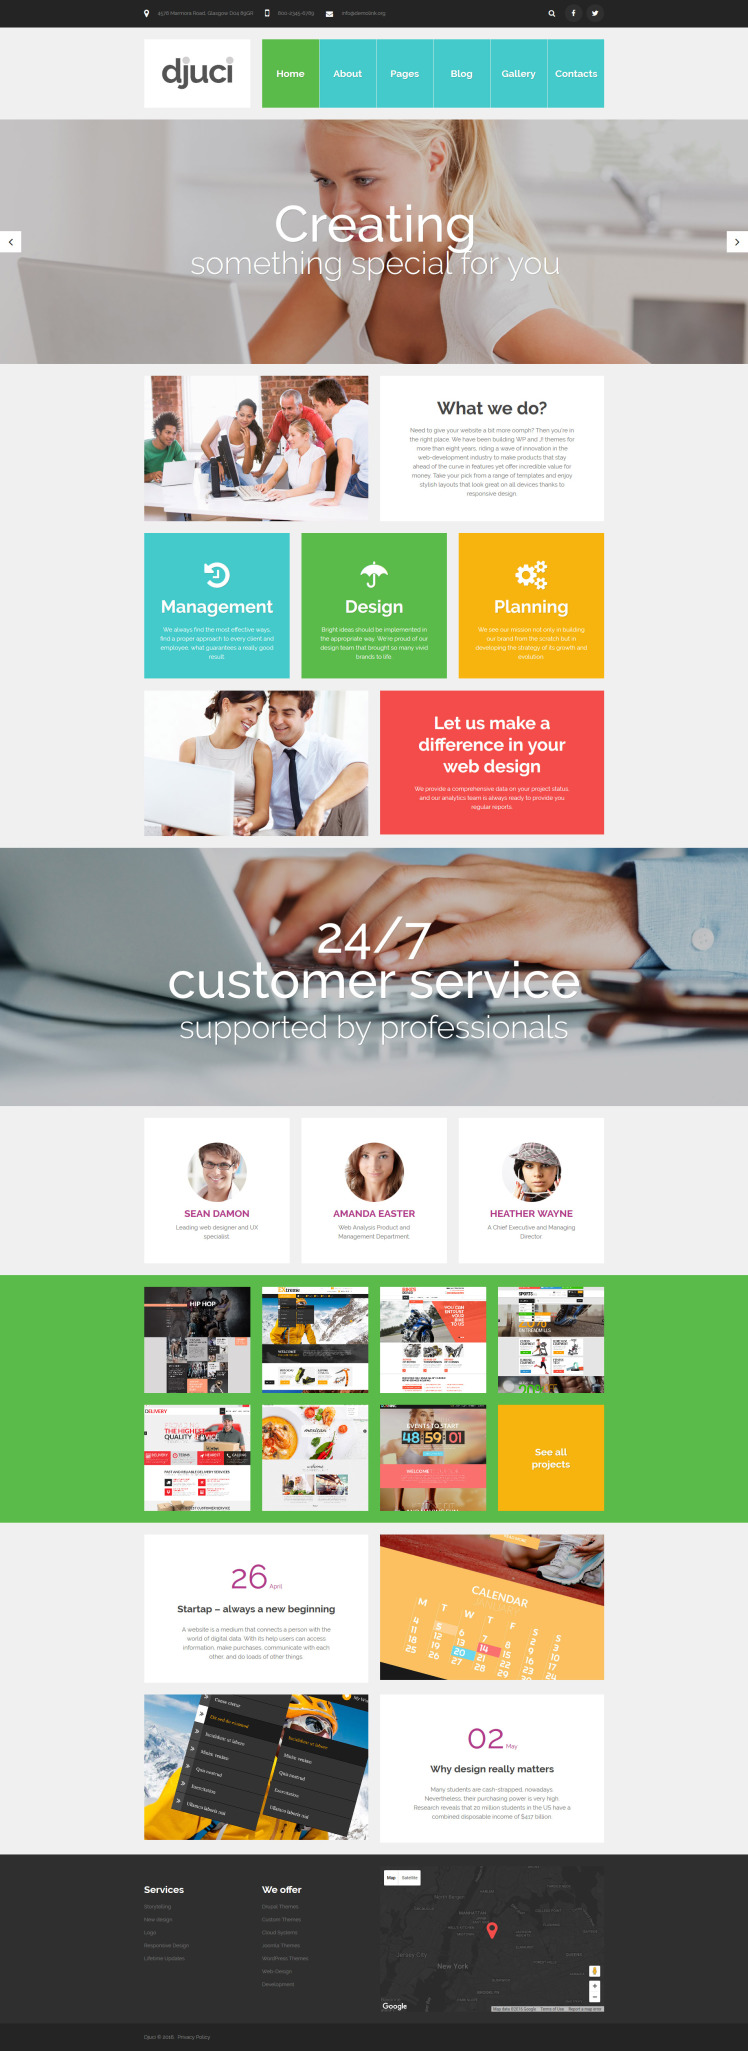 Djuci Web Design Agency Joomla Templates